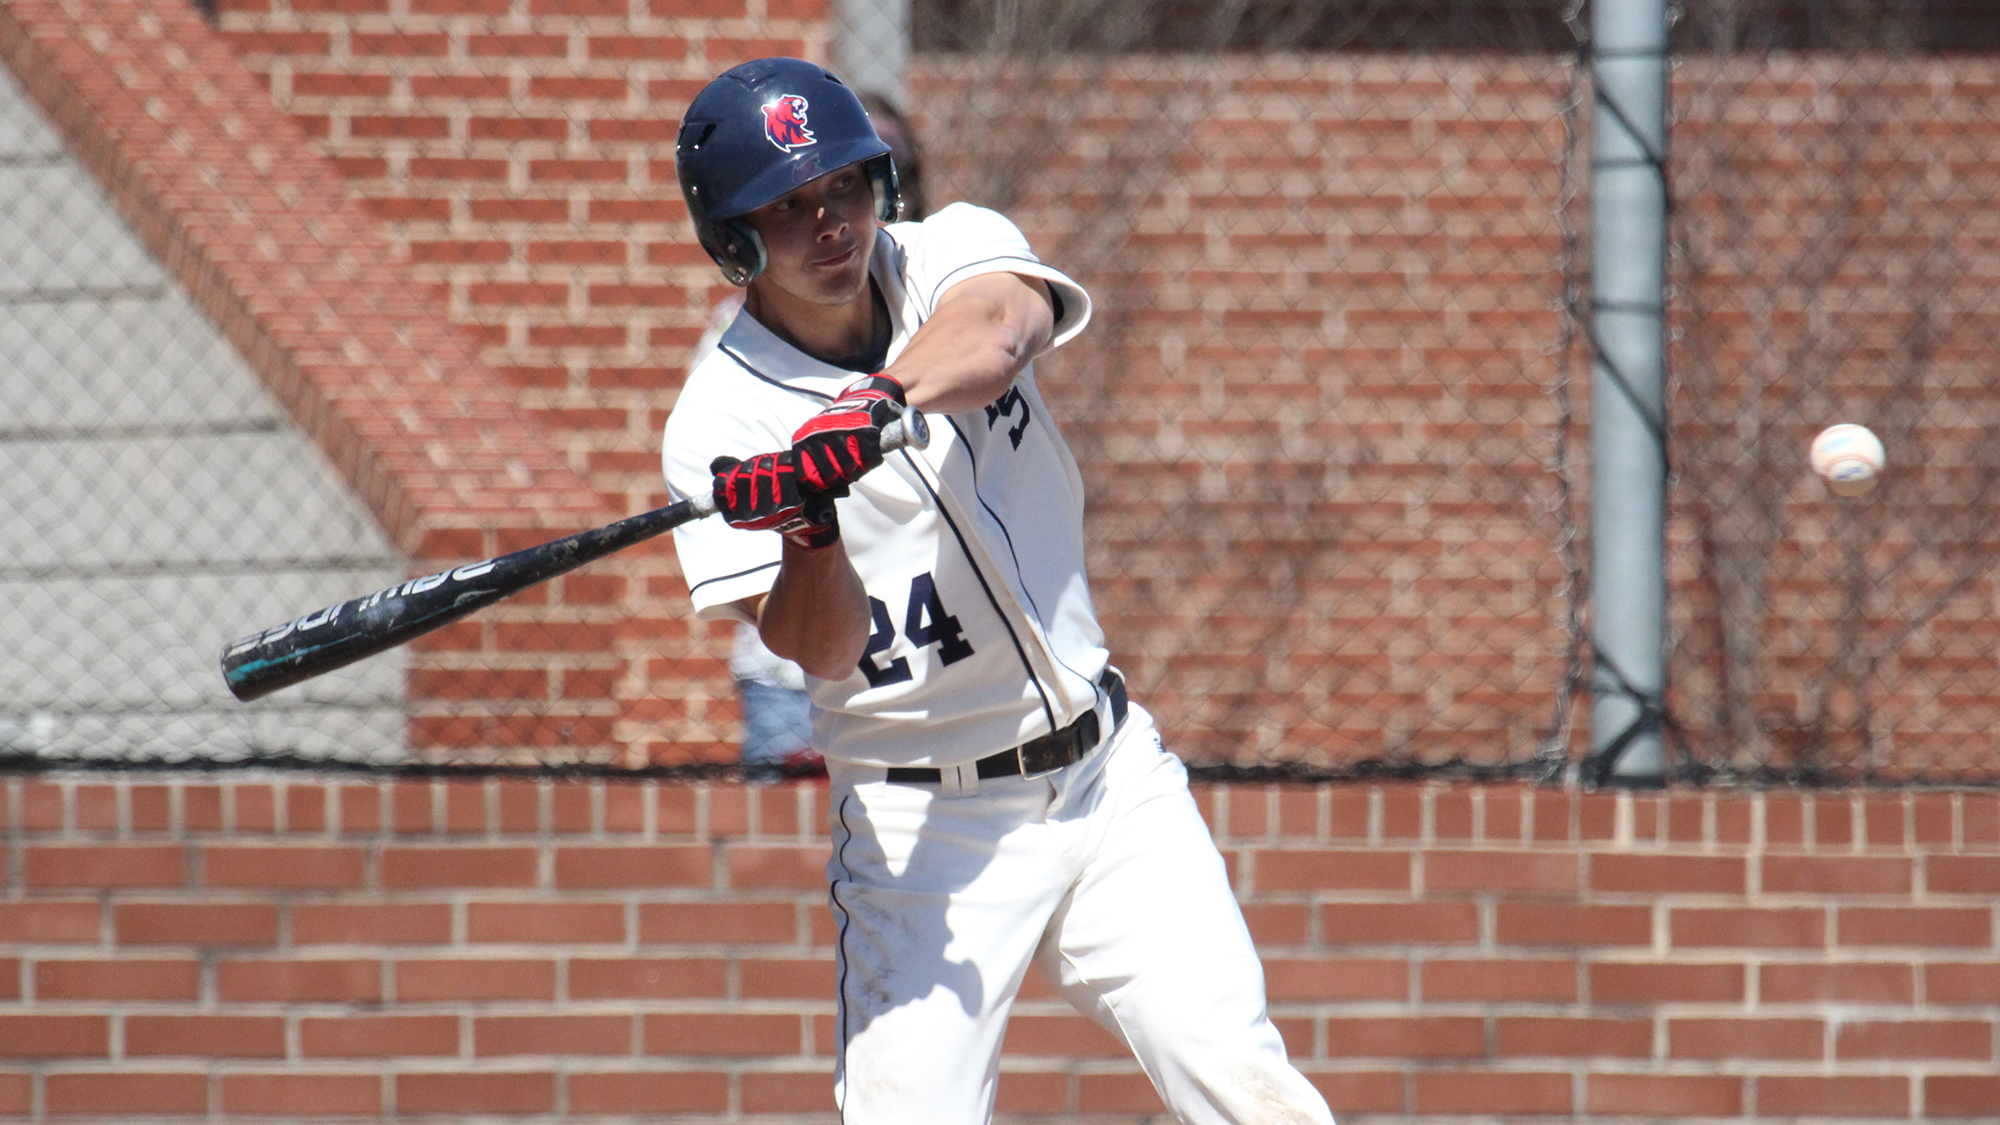 Etobicoke Rangers grad Nick Follett (Toronto, Ont.) went 8-for-16 with three home runs and nine RBIs in four games for the Rogers State Hillcats. Photo: Rogers State Athletics